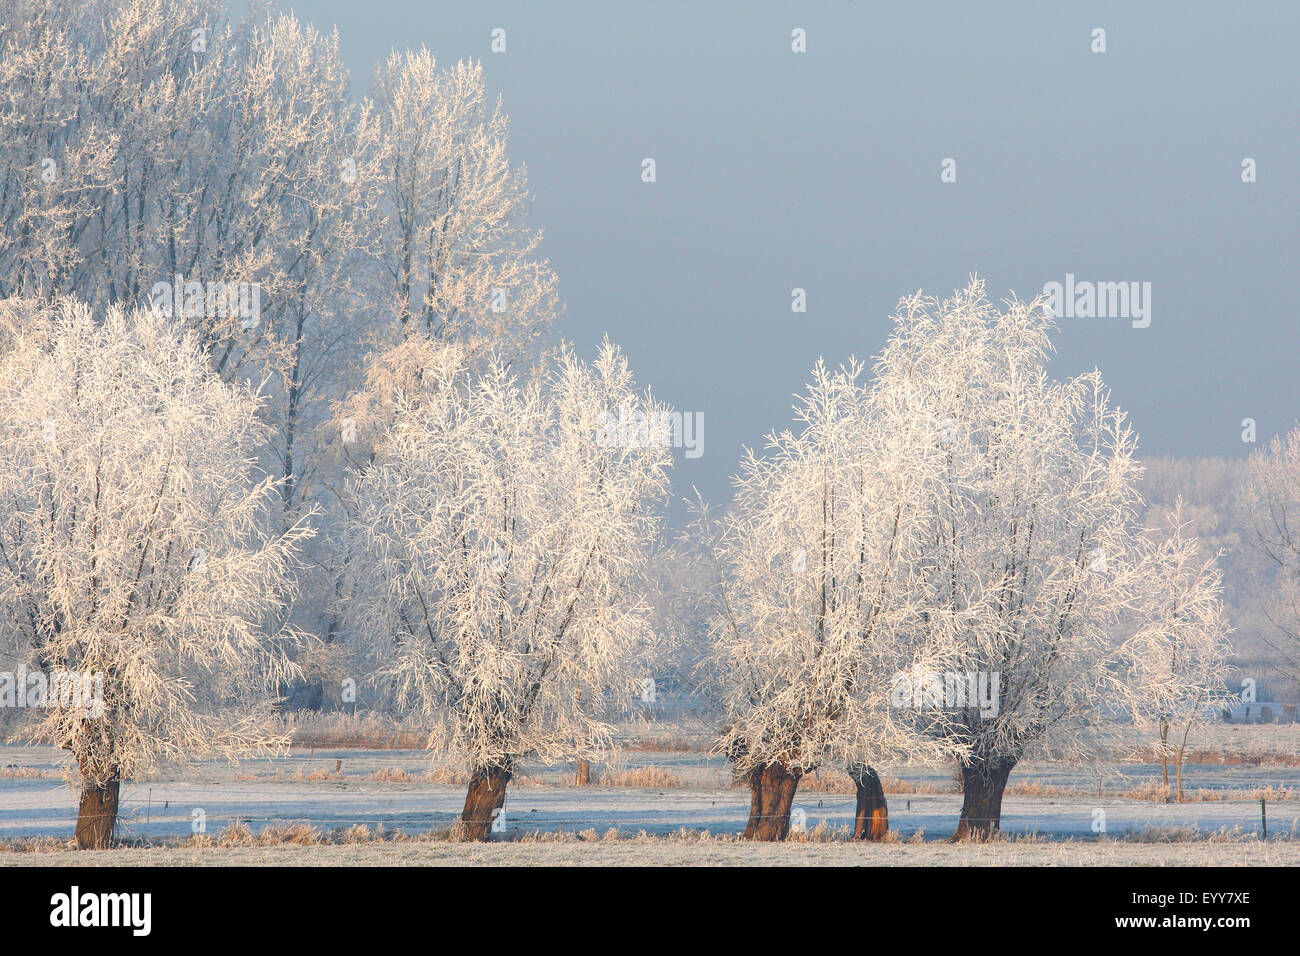 willow, osier (Salix spec.), pollard willows covered by hoarfrost, Belgium - Stock Image